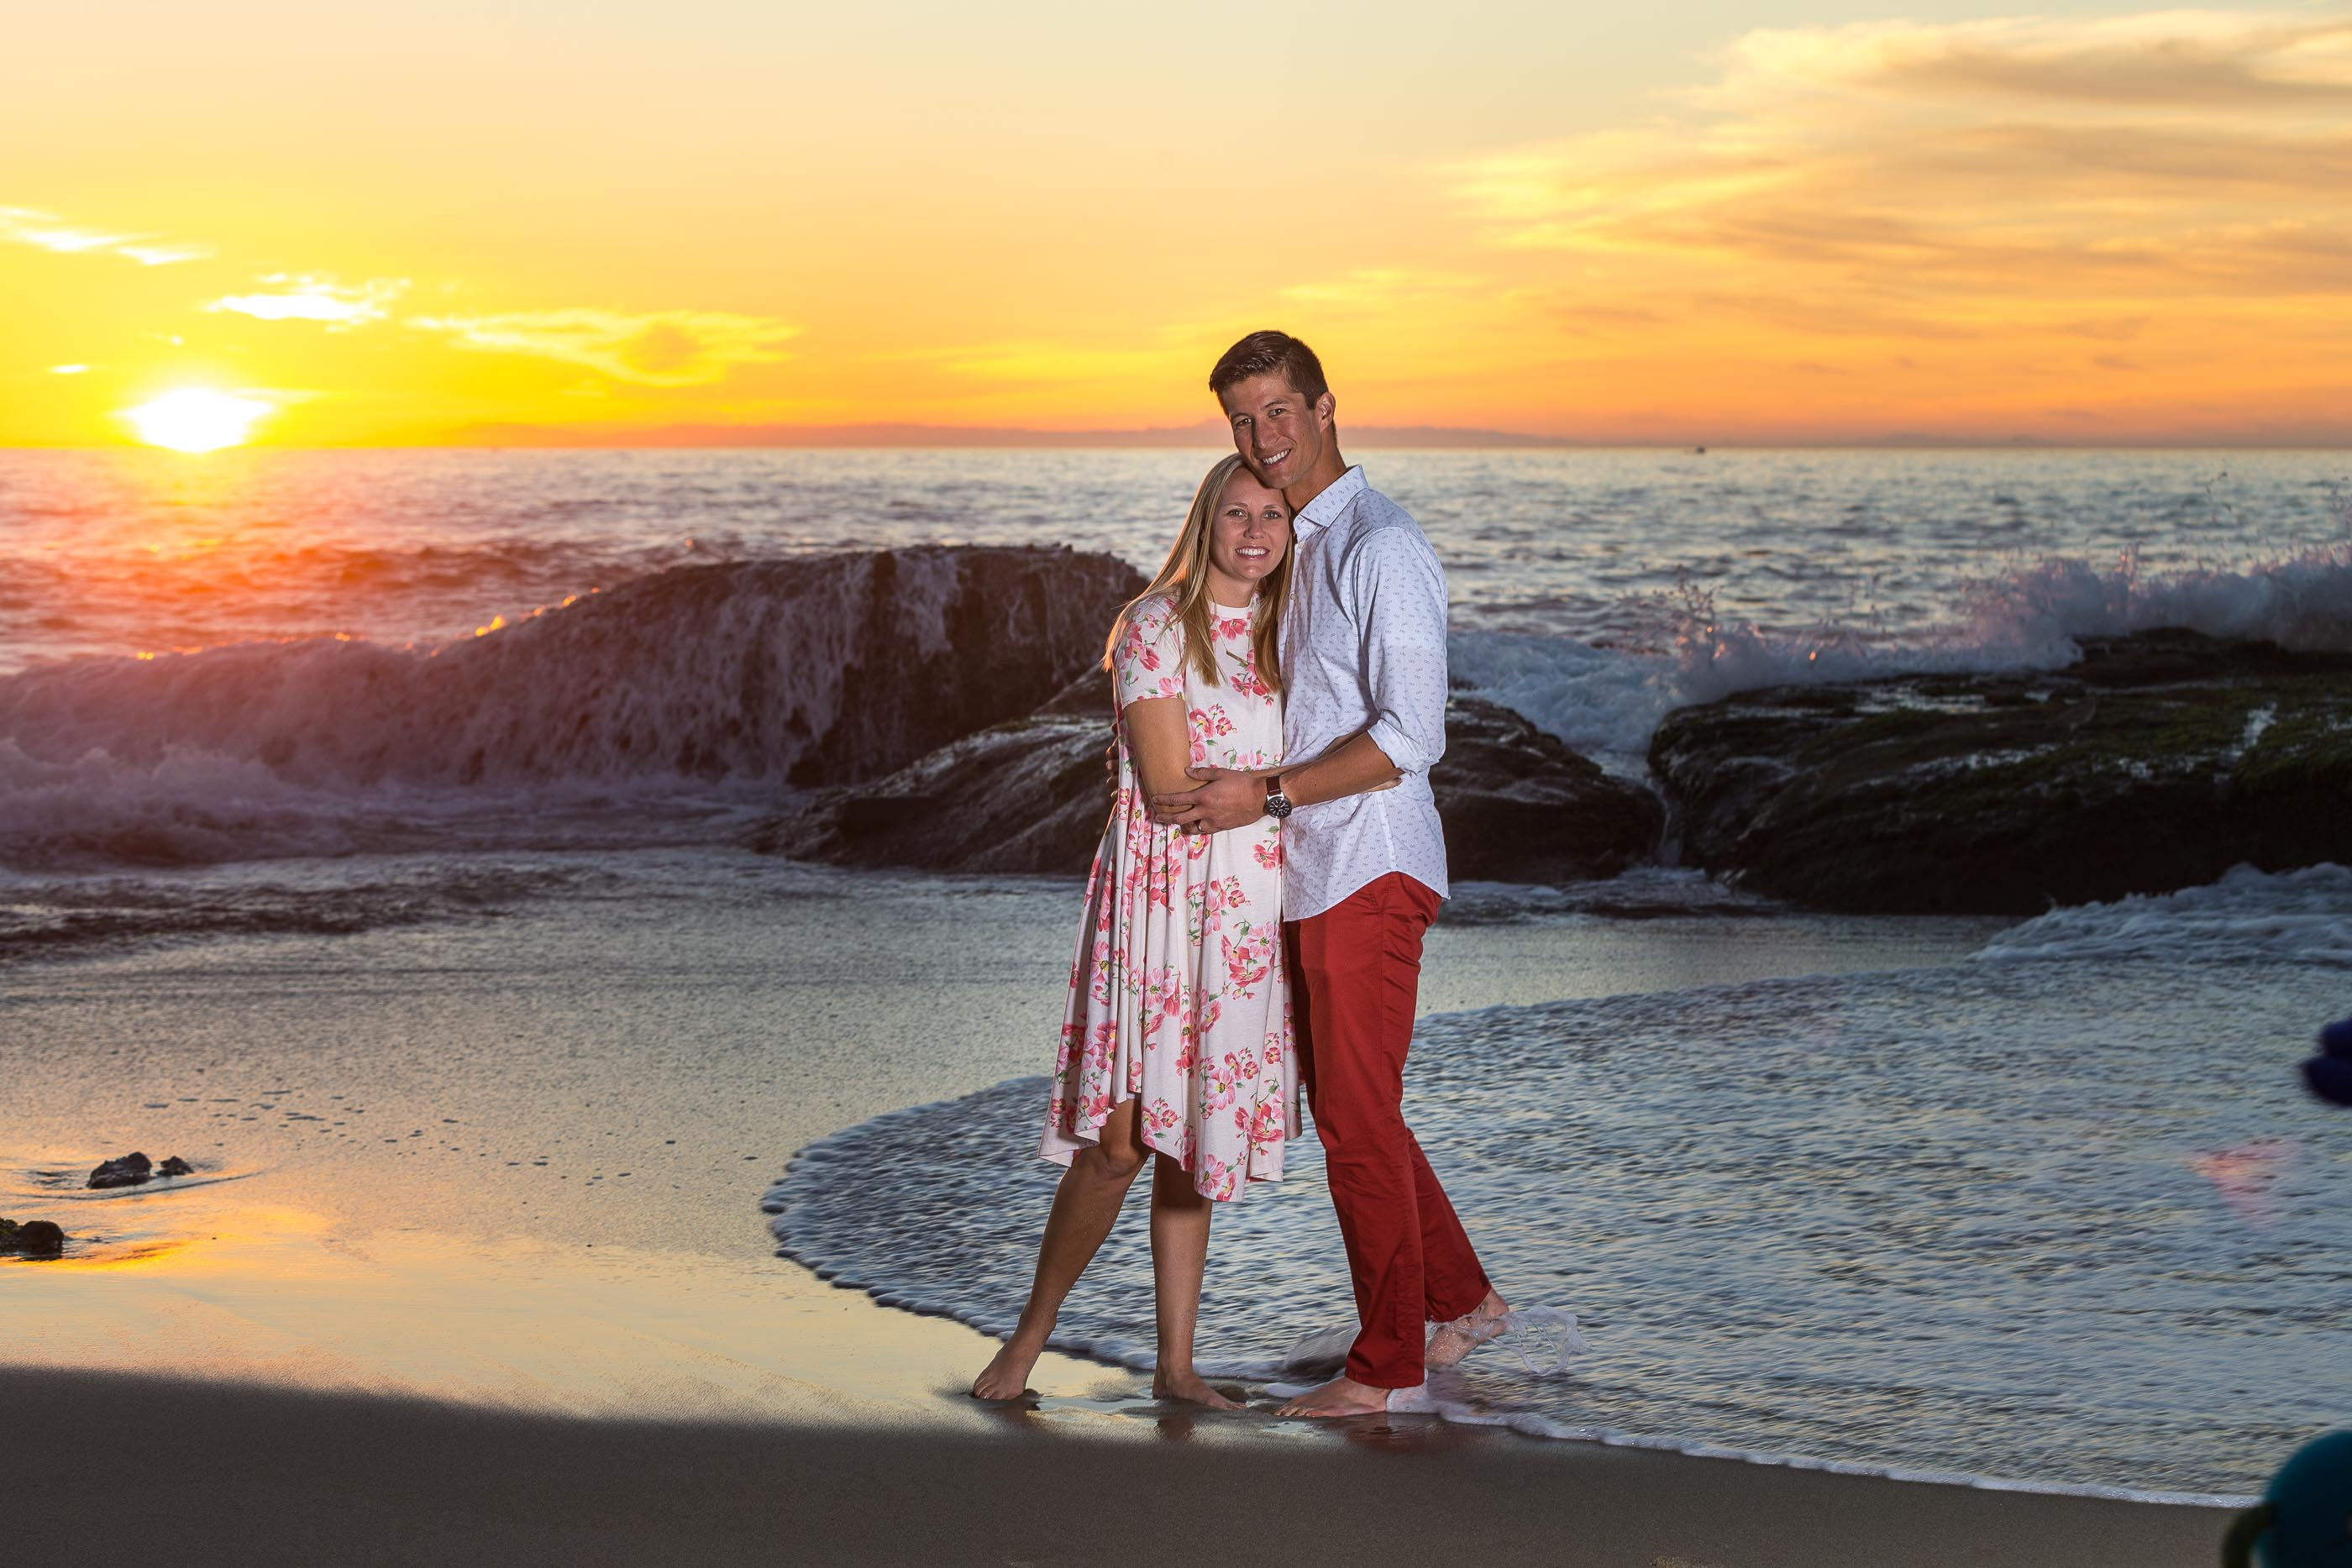 Laguna Beach Engagement at sunset in Laguna Beach California